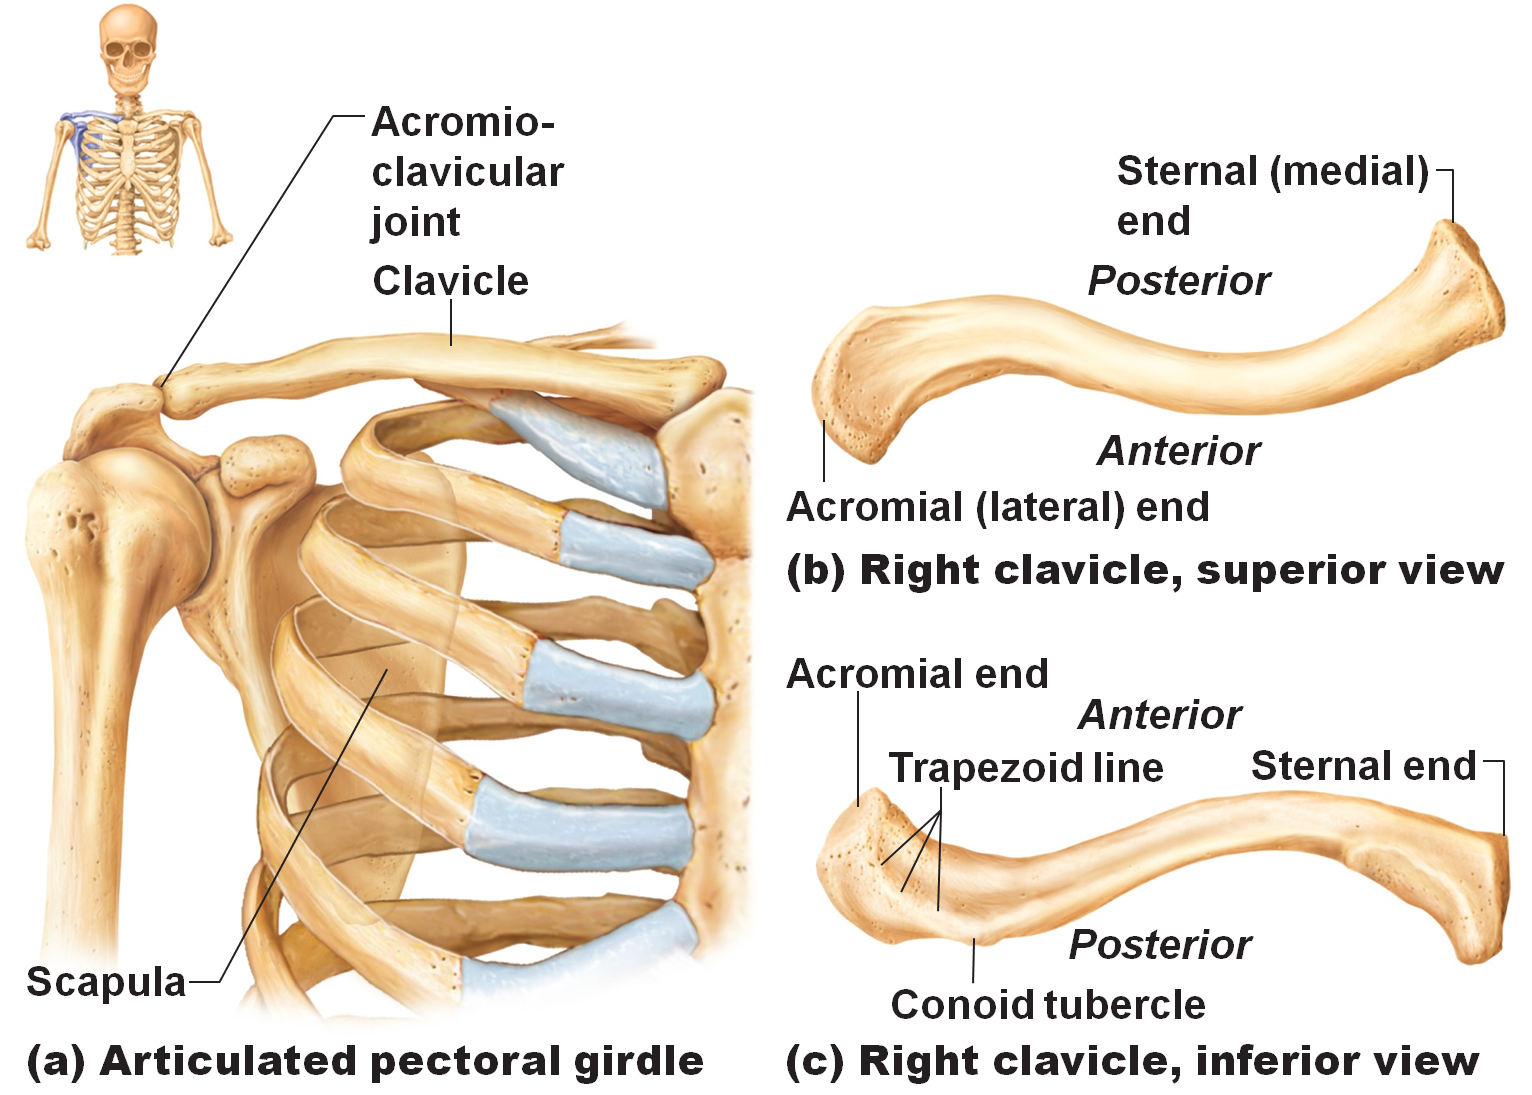 clavicle fracture anatomy and function - health, medicine and, Skeleton